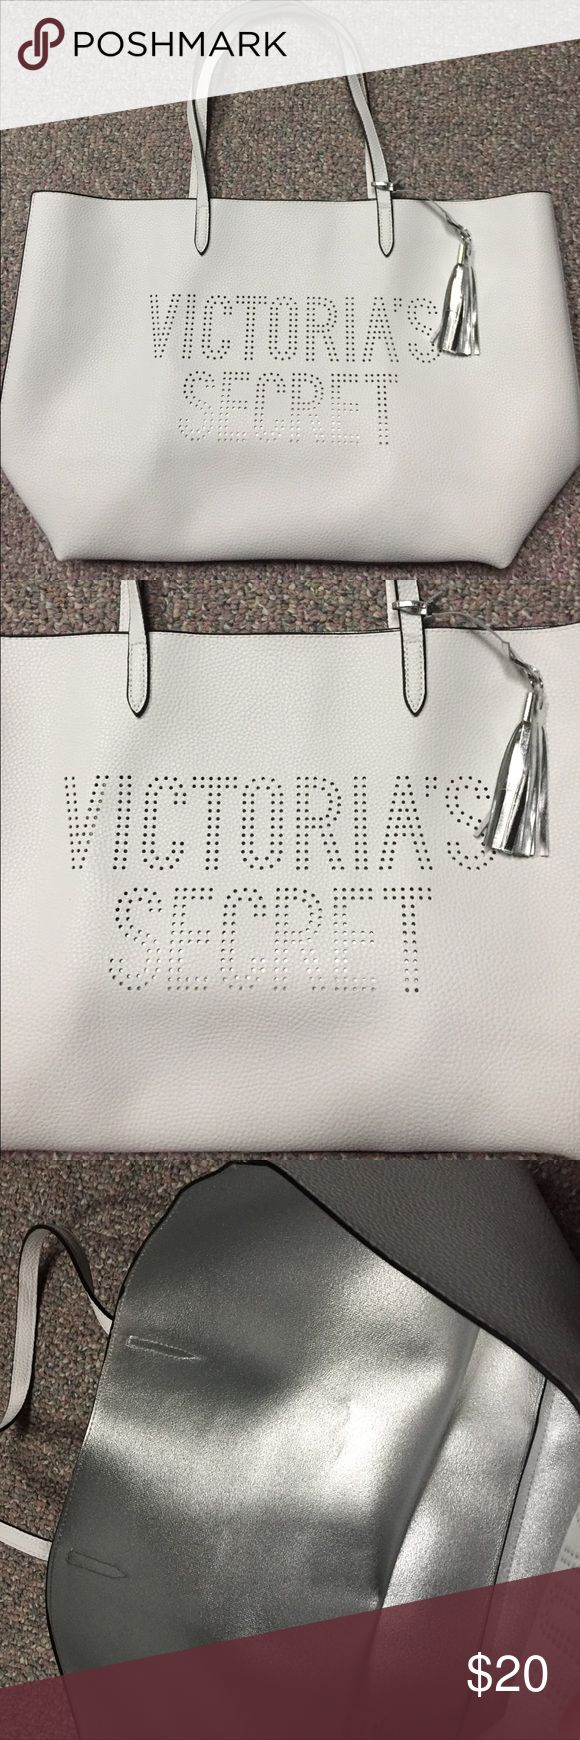 Victoria's Secret Tote Brand New VS Tote. Bright white with Metallic Silver interior Victoria's Secret Bags Totes